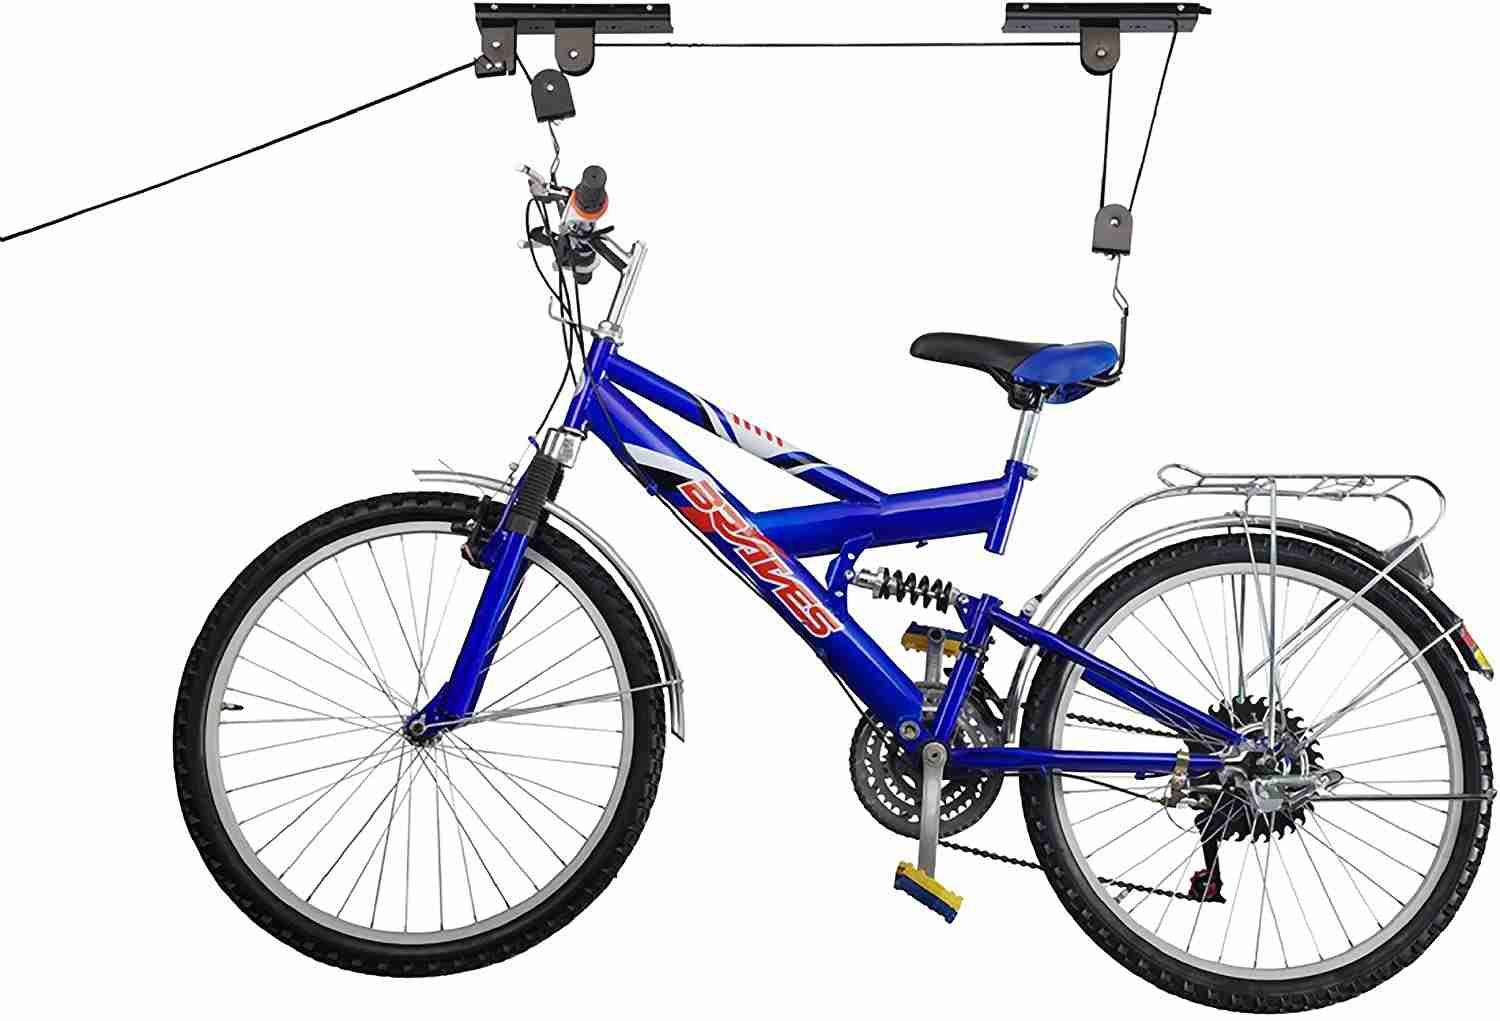 rad sportz bicycle hoist garage storage bike lift